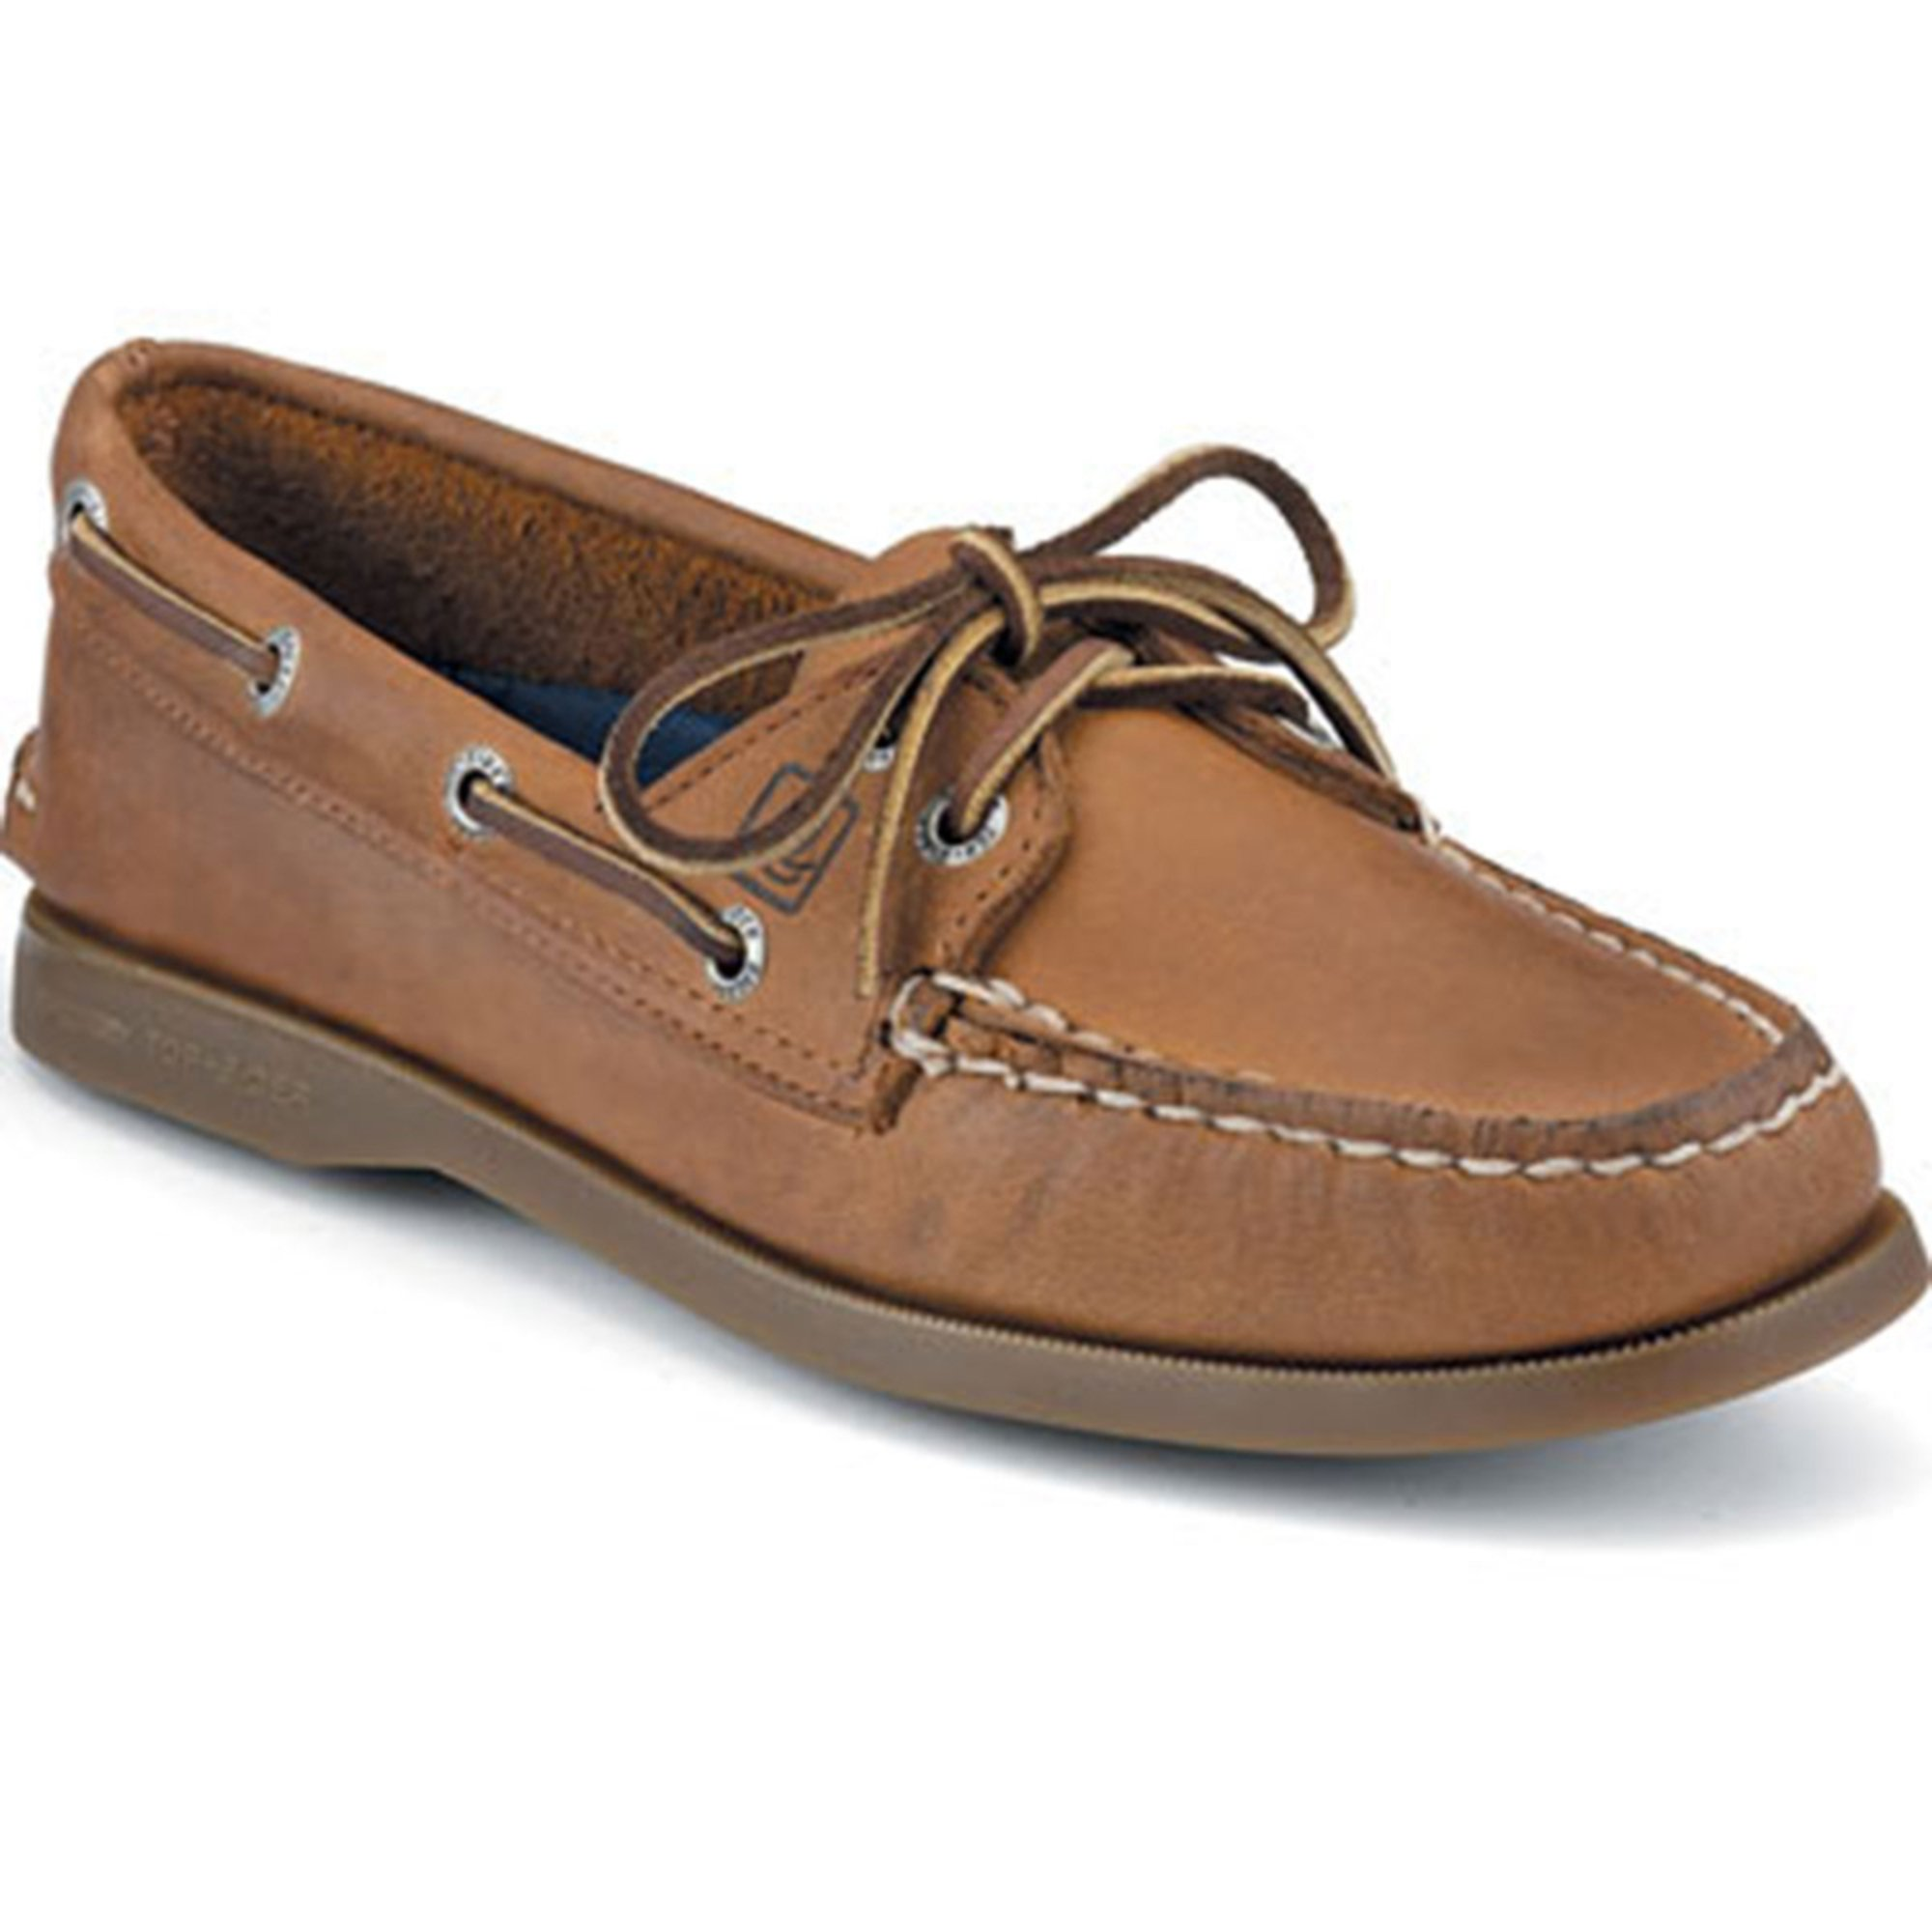 Sperry Top-Sider. Sperry Top-Sider Authentic Original Women's Boat Shoe